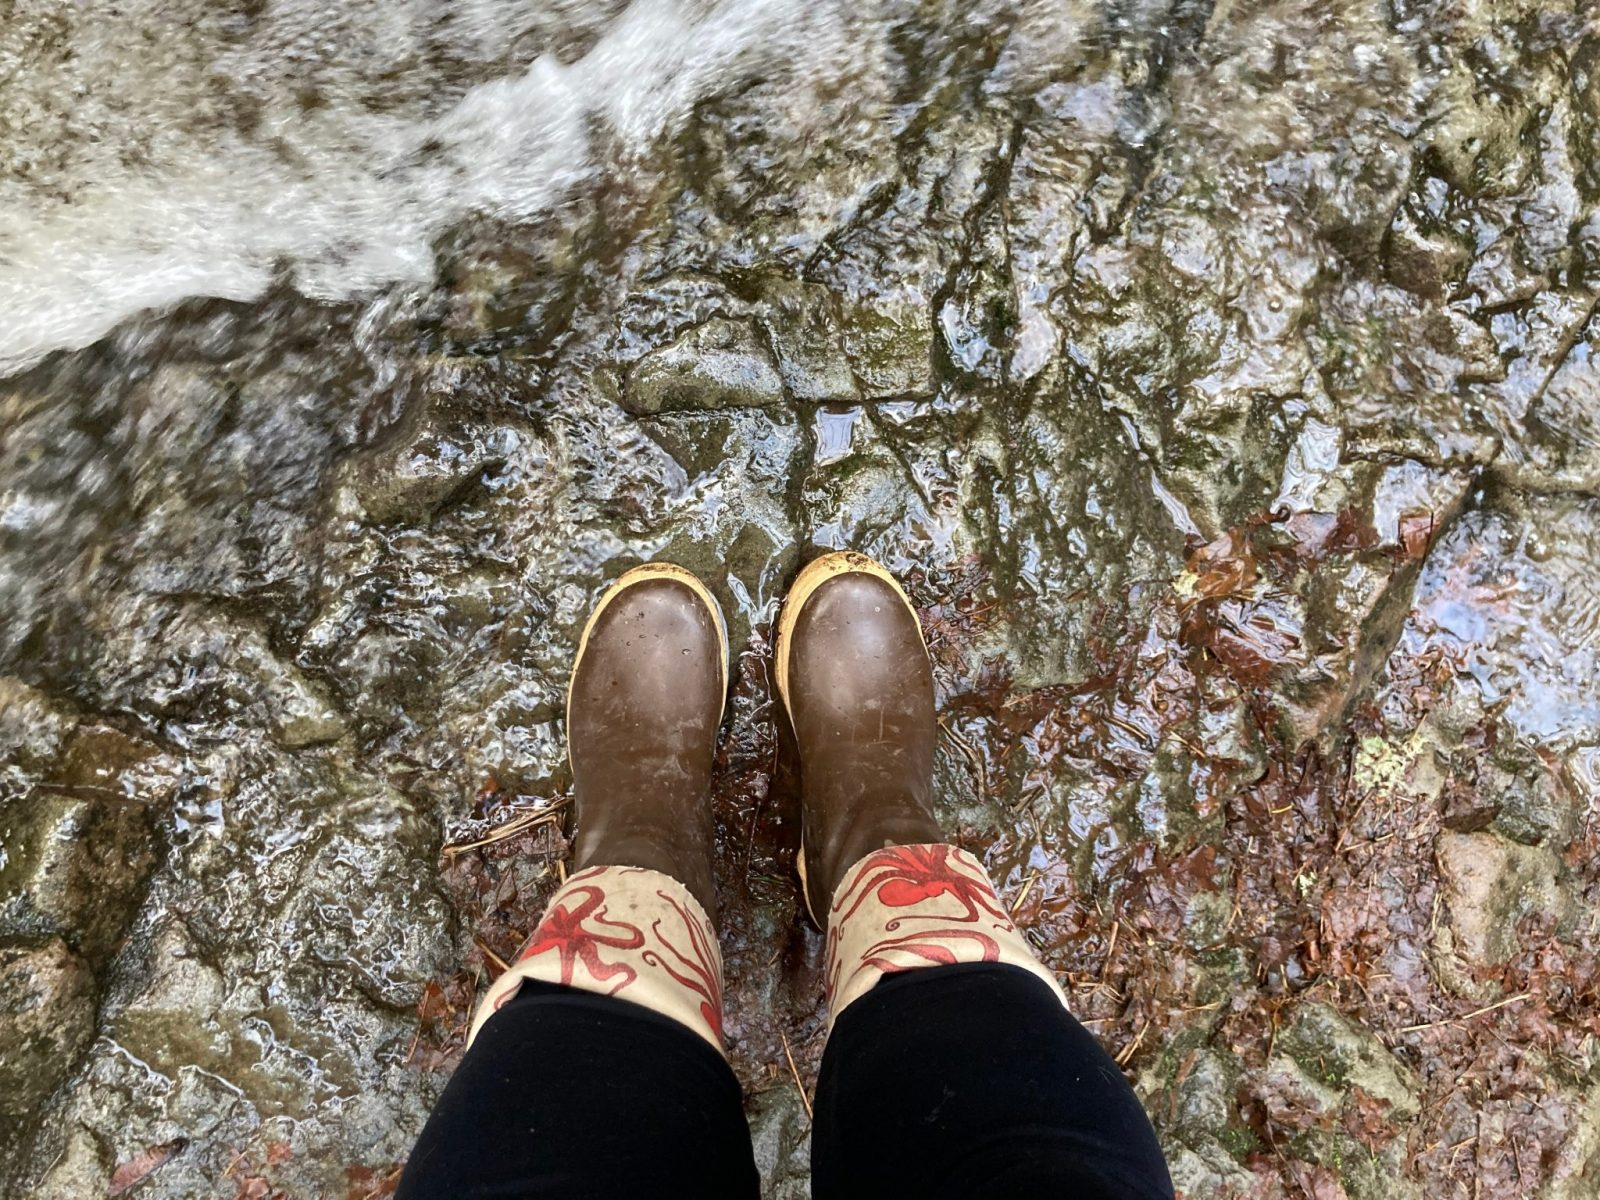 A person's legs wearing leggings and rubber boots standing at the edge of a creek on a winter hike